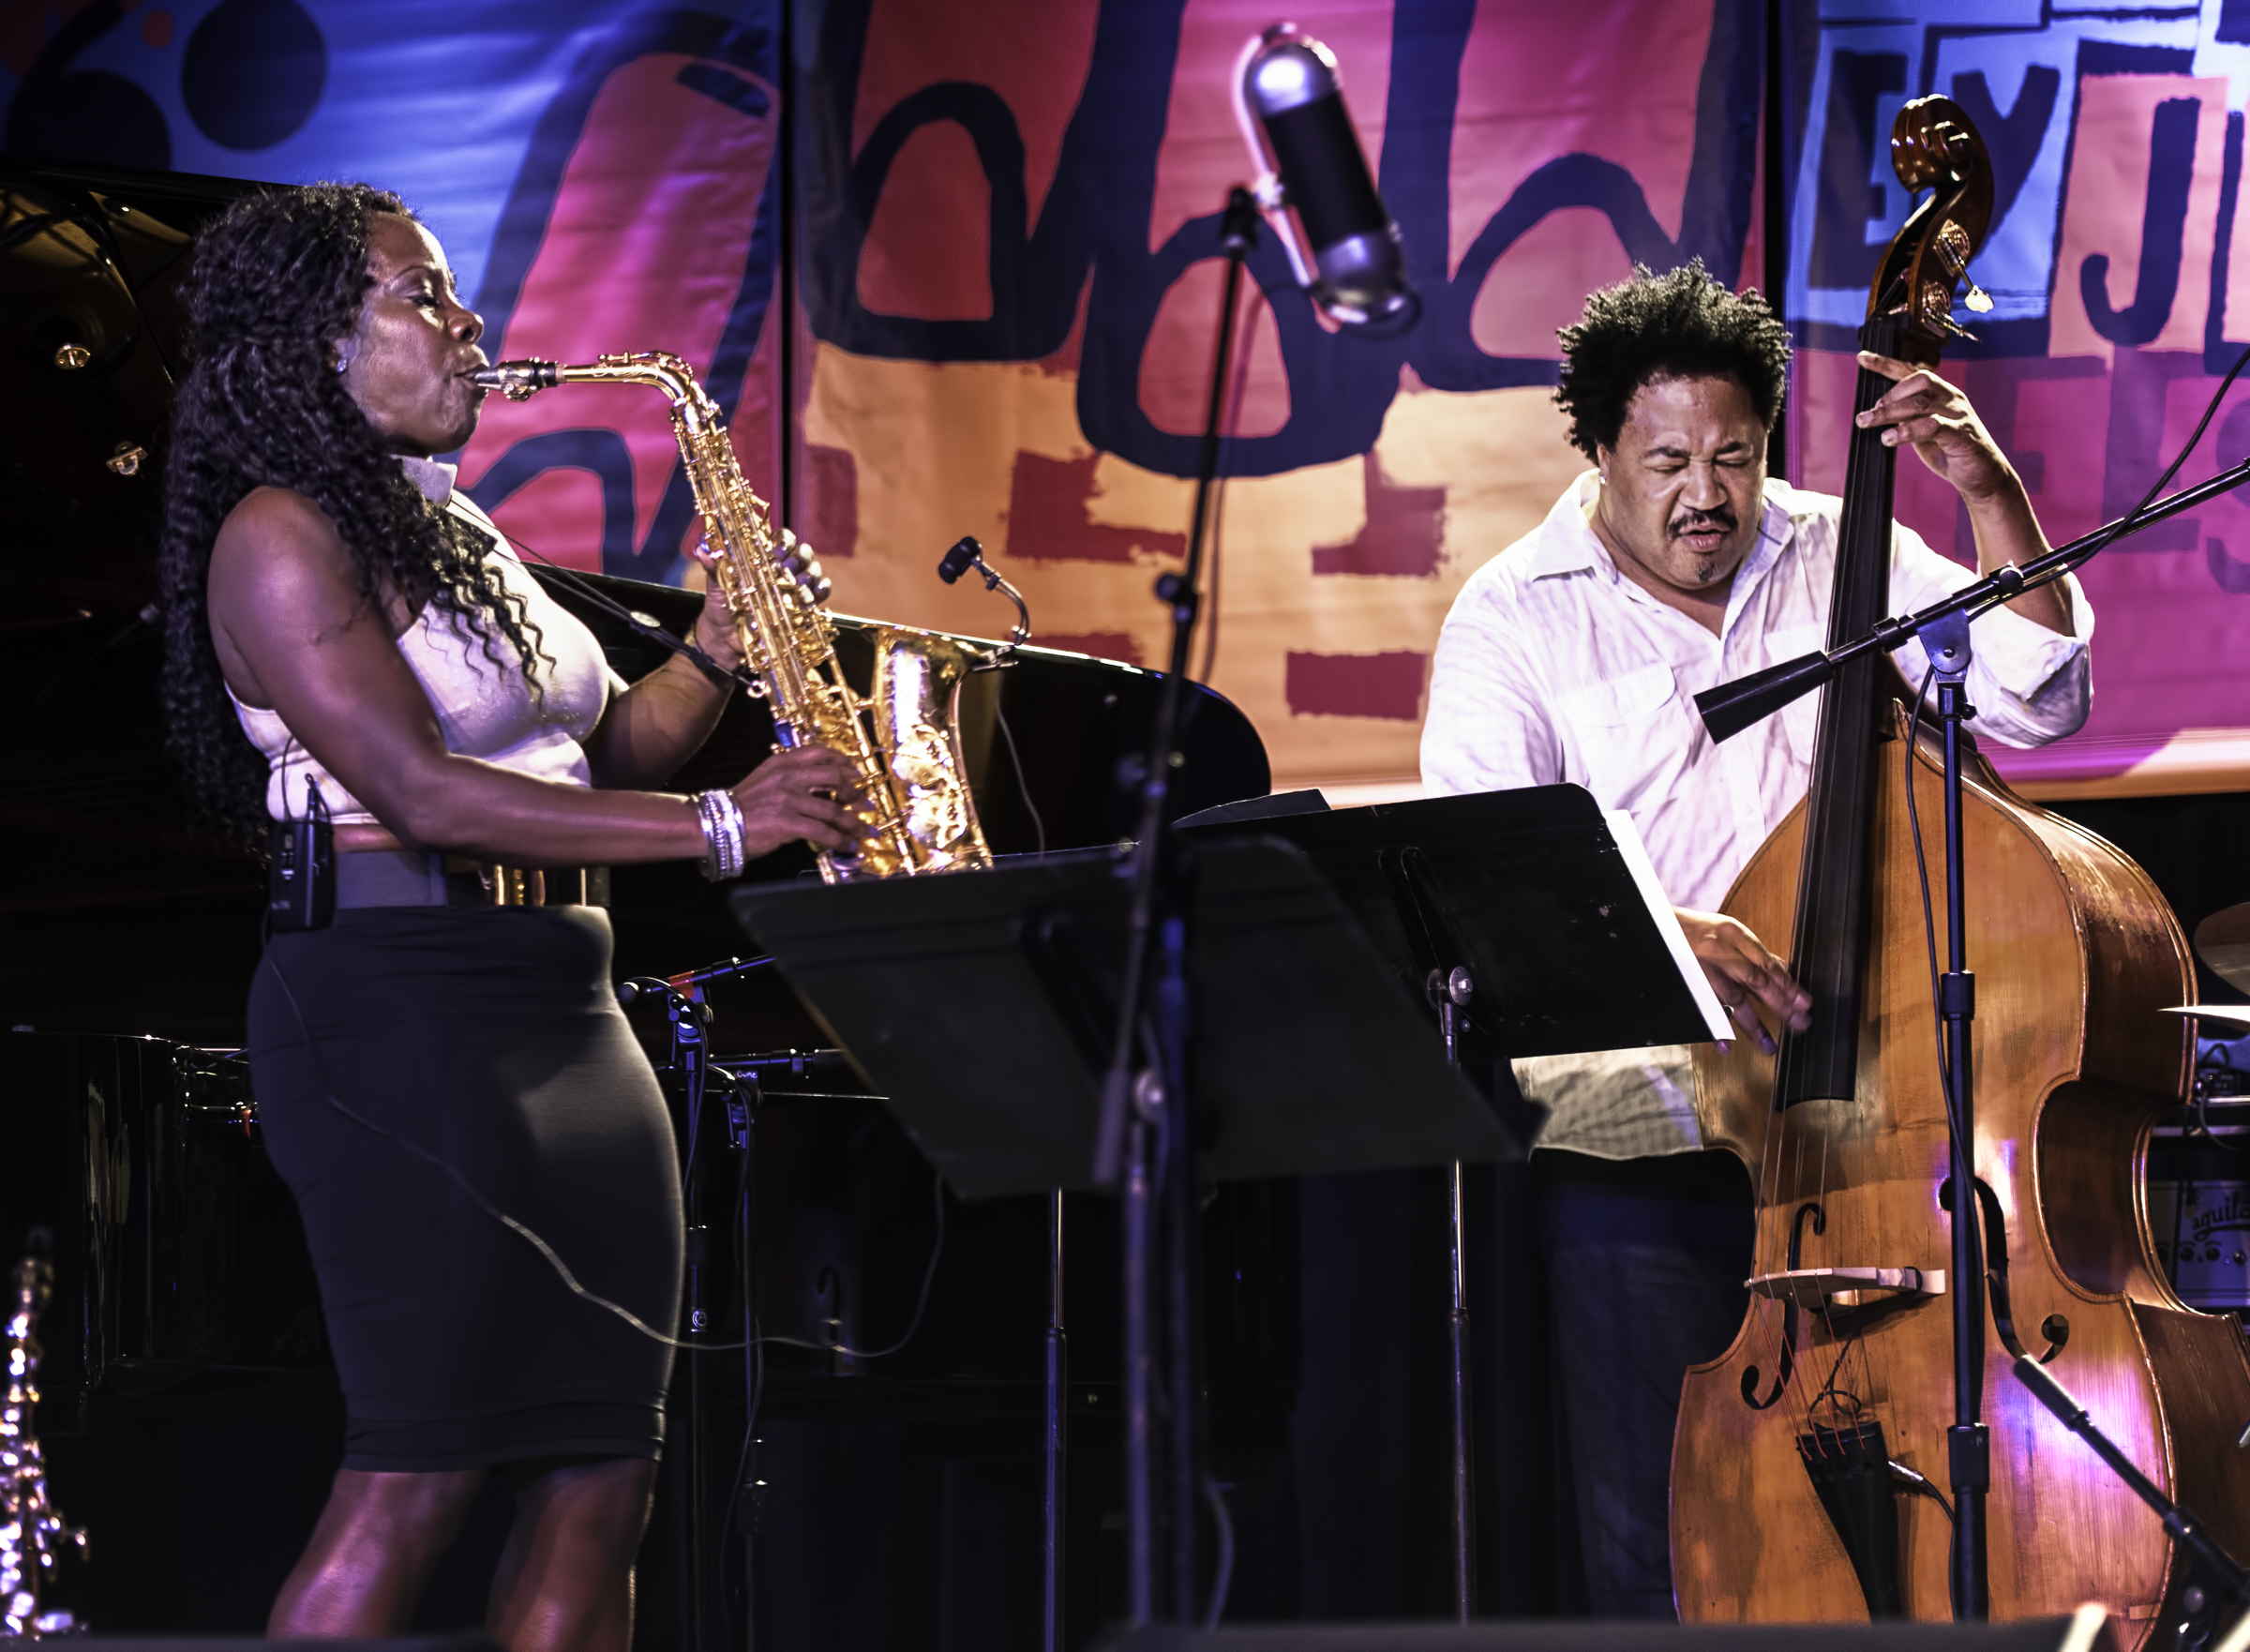 Tia Fuller and James Genus with the Tia Fuller Quintet at the Monterey Jazz Festival